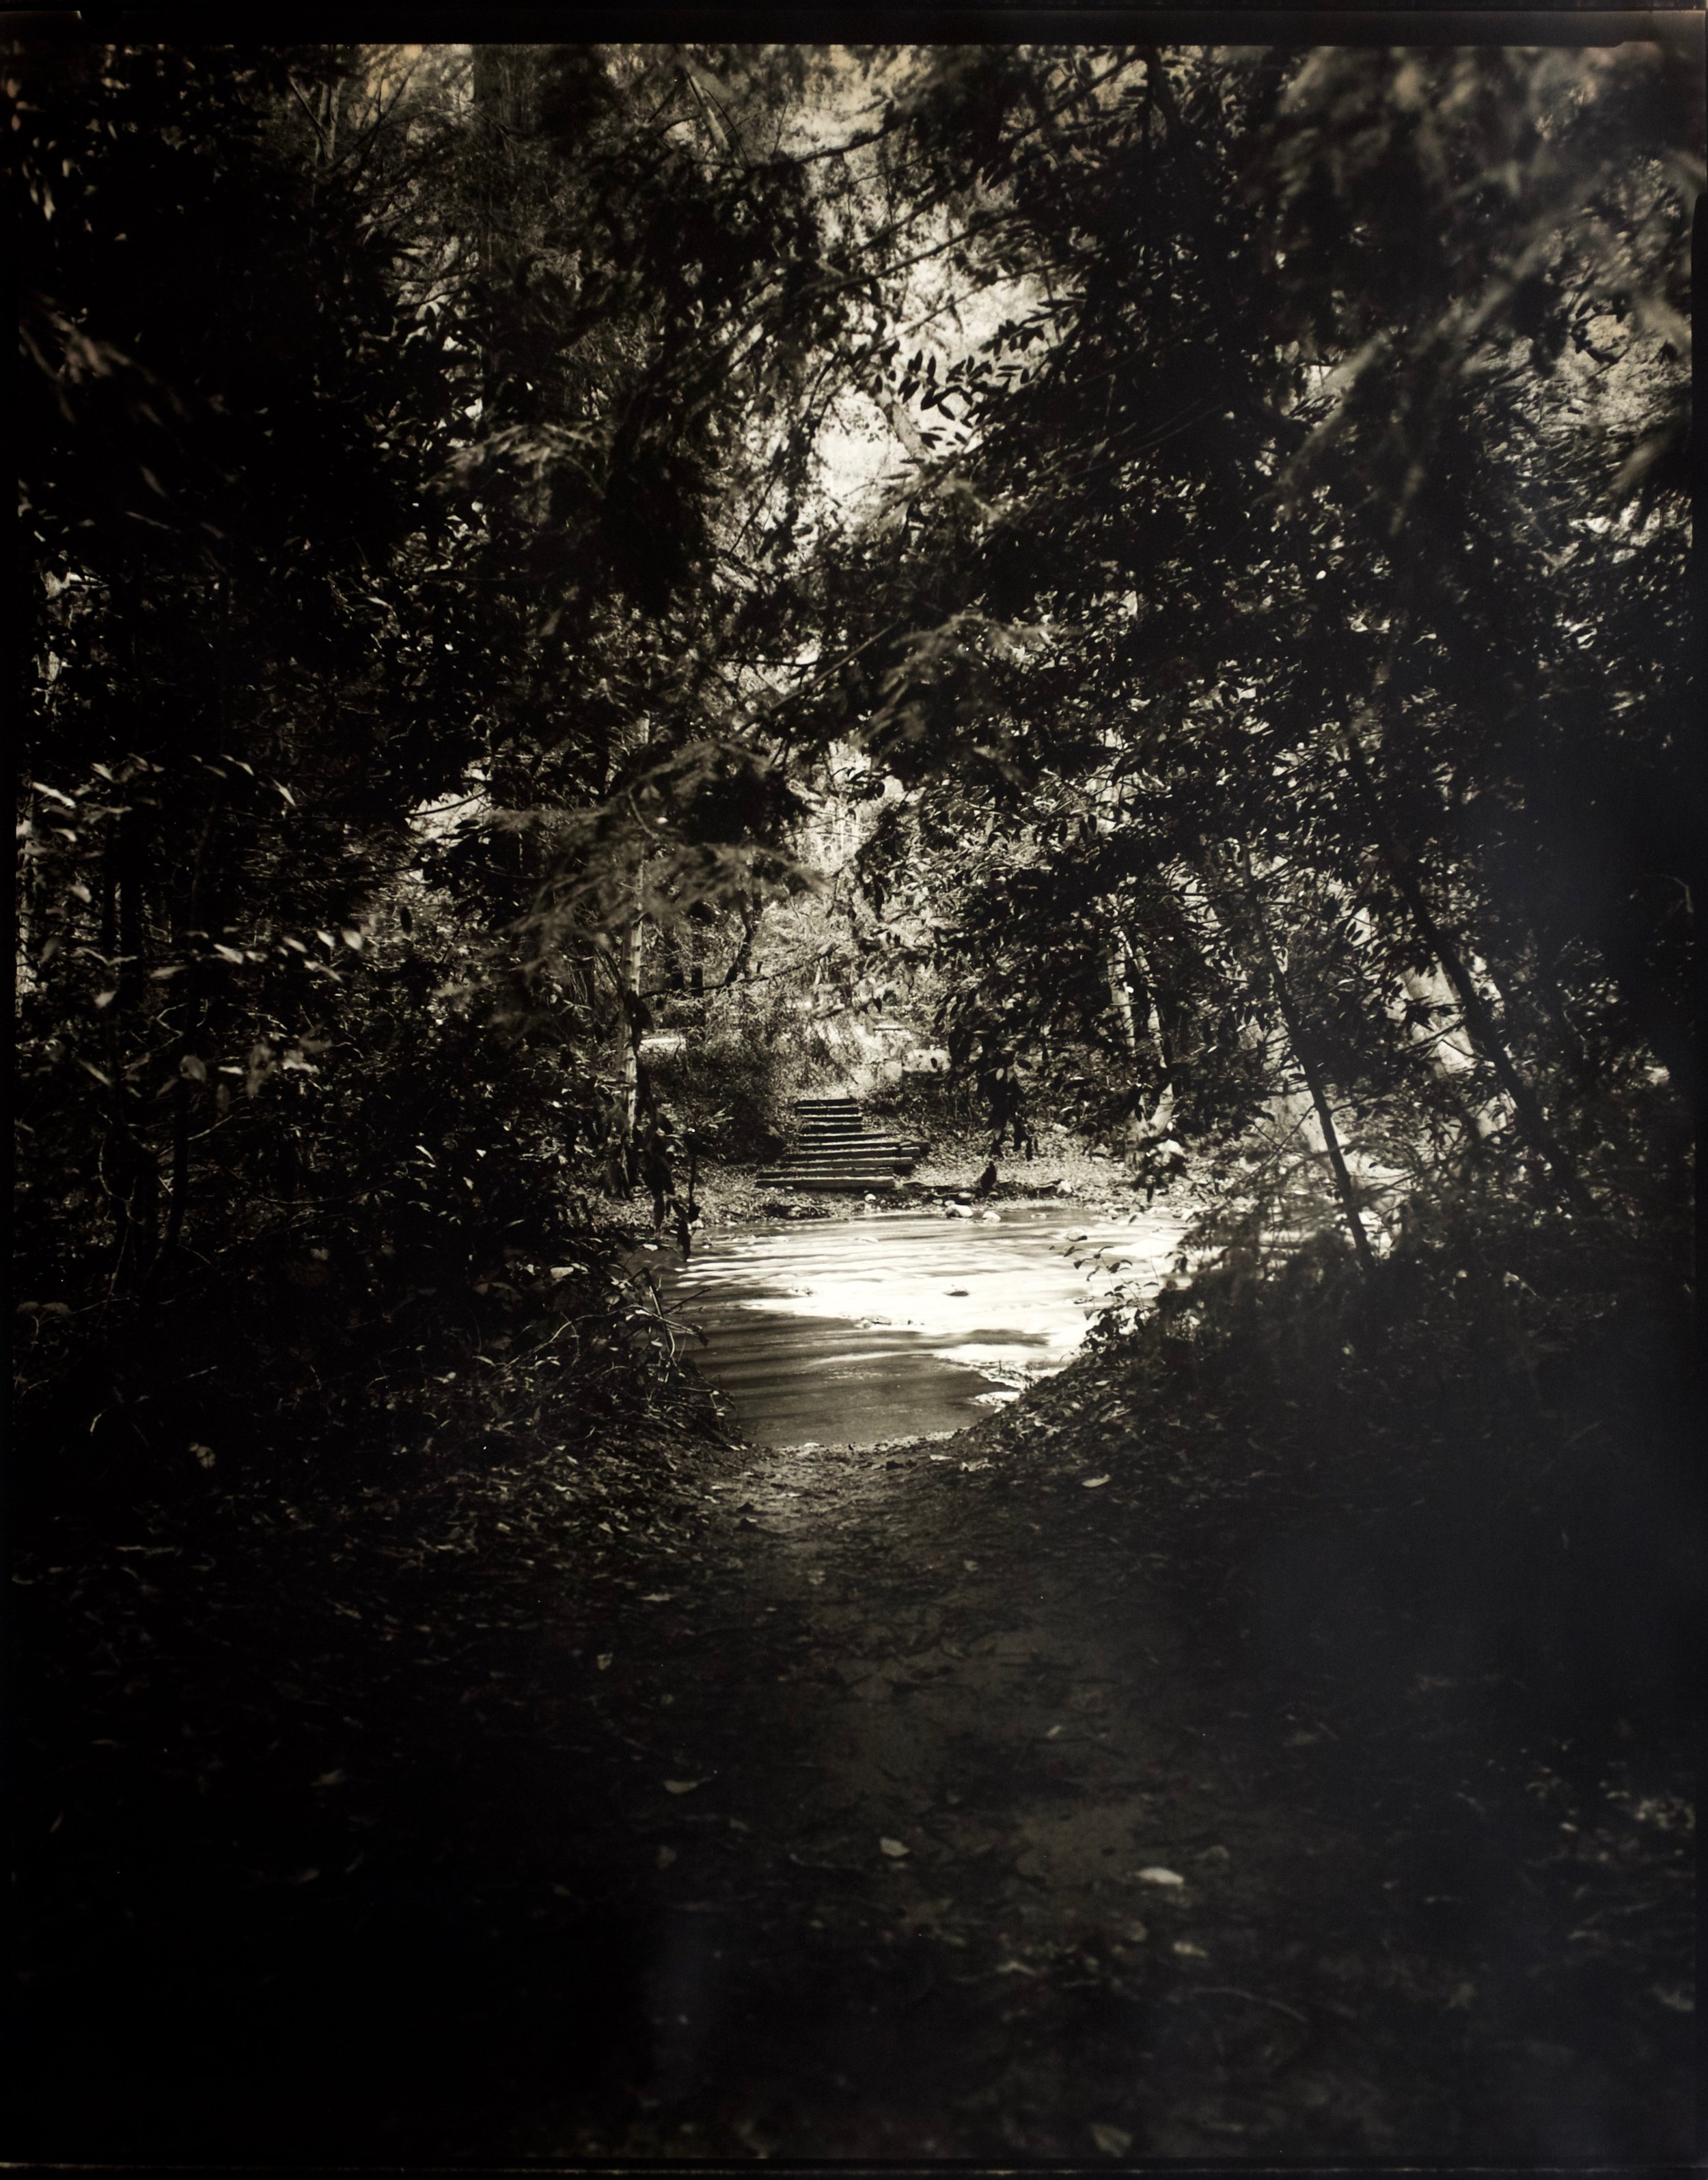 Crossing Over, 50 in. x 41 in., hand printed on Ilford paper, 2018. #2018-2.jpg